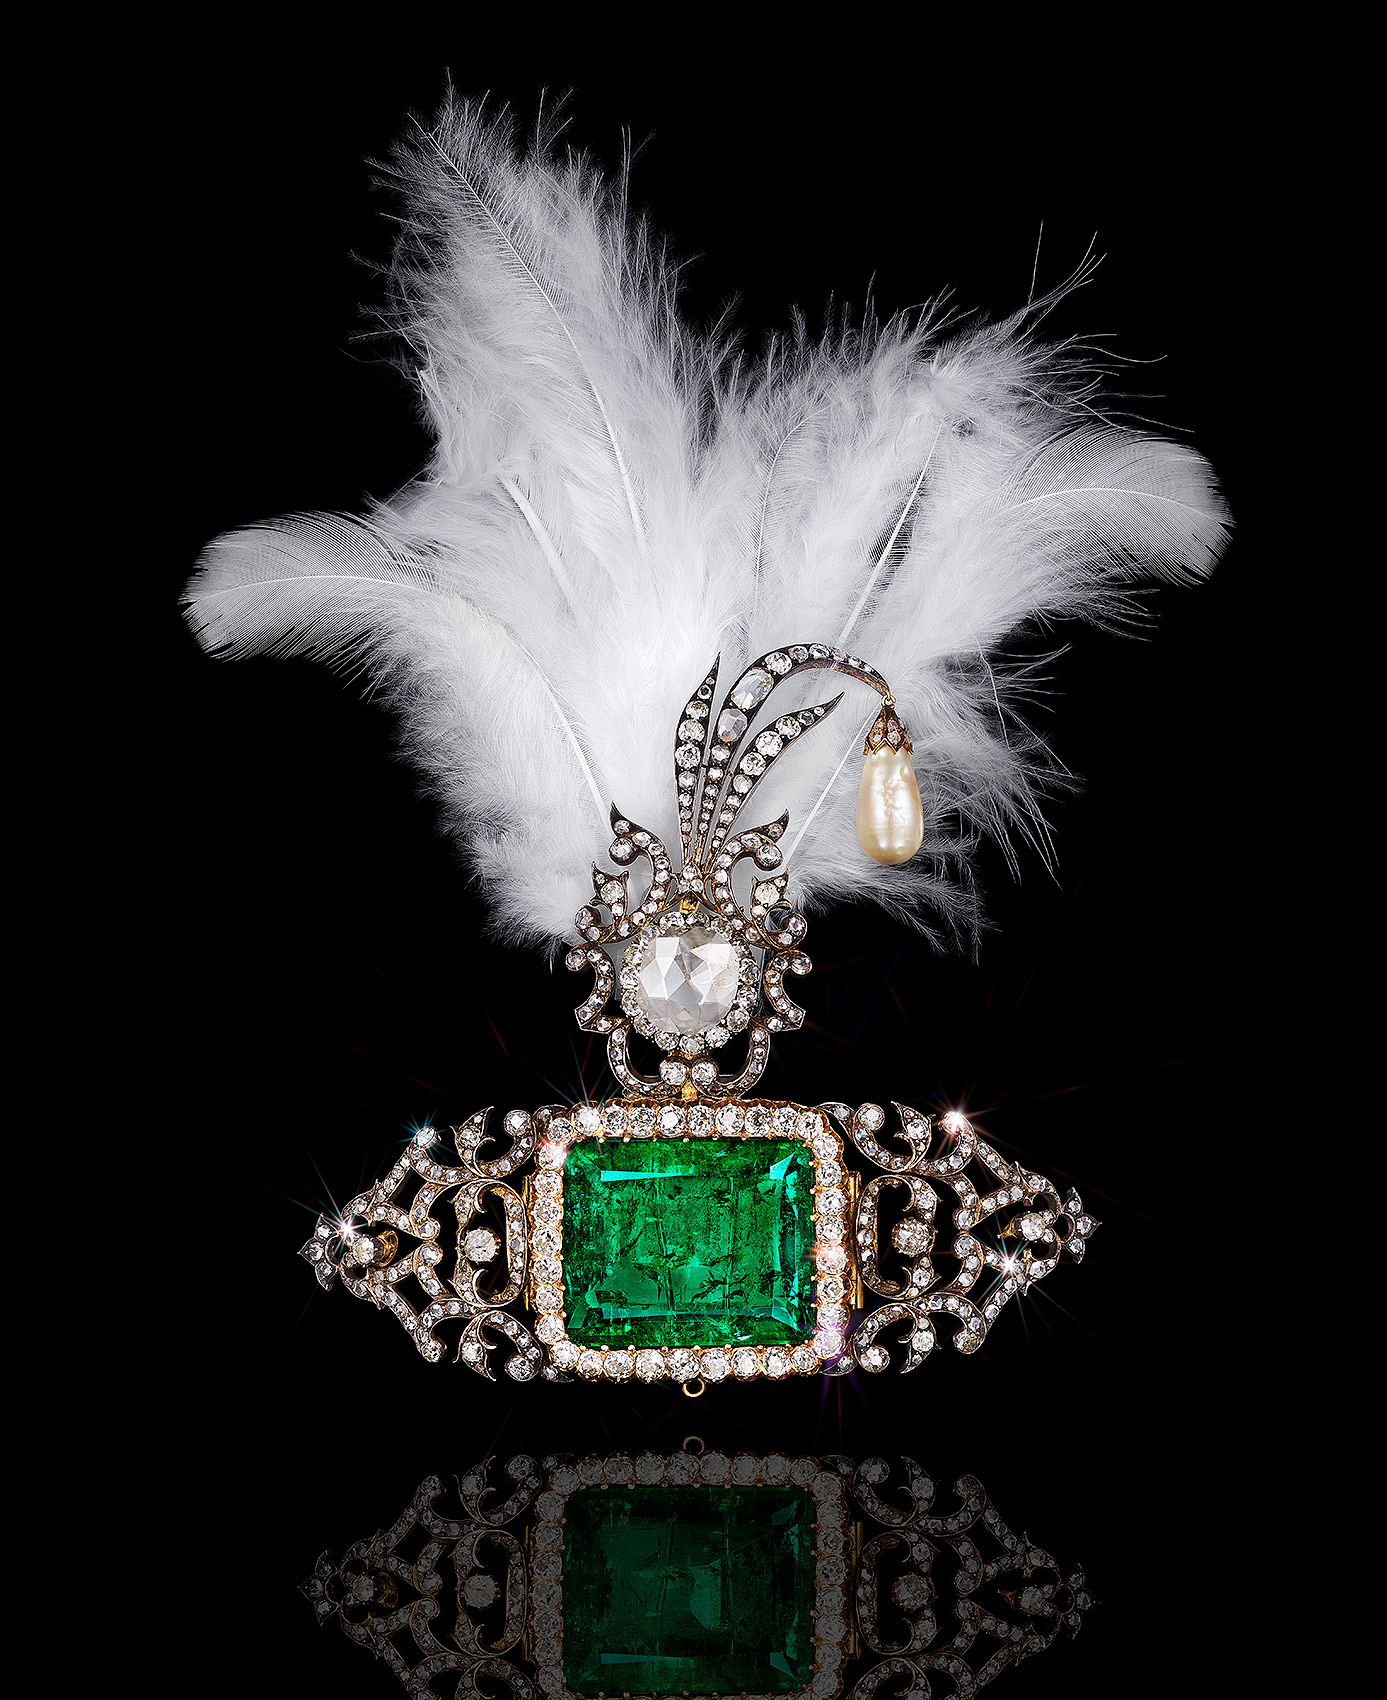 Emerald Brooch with Feathers